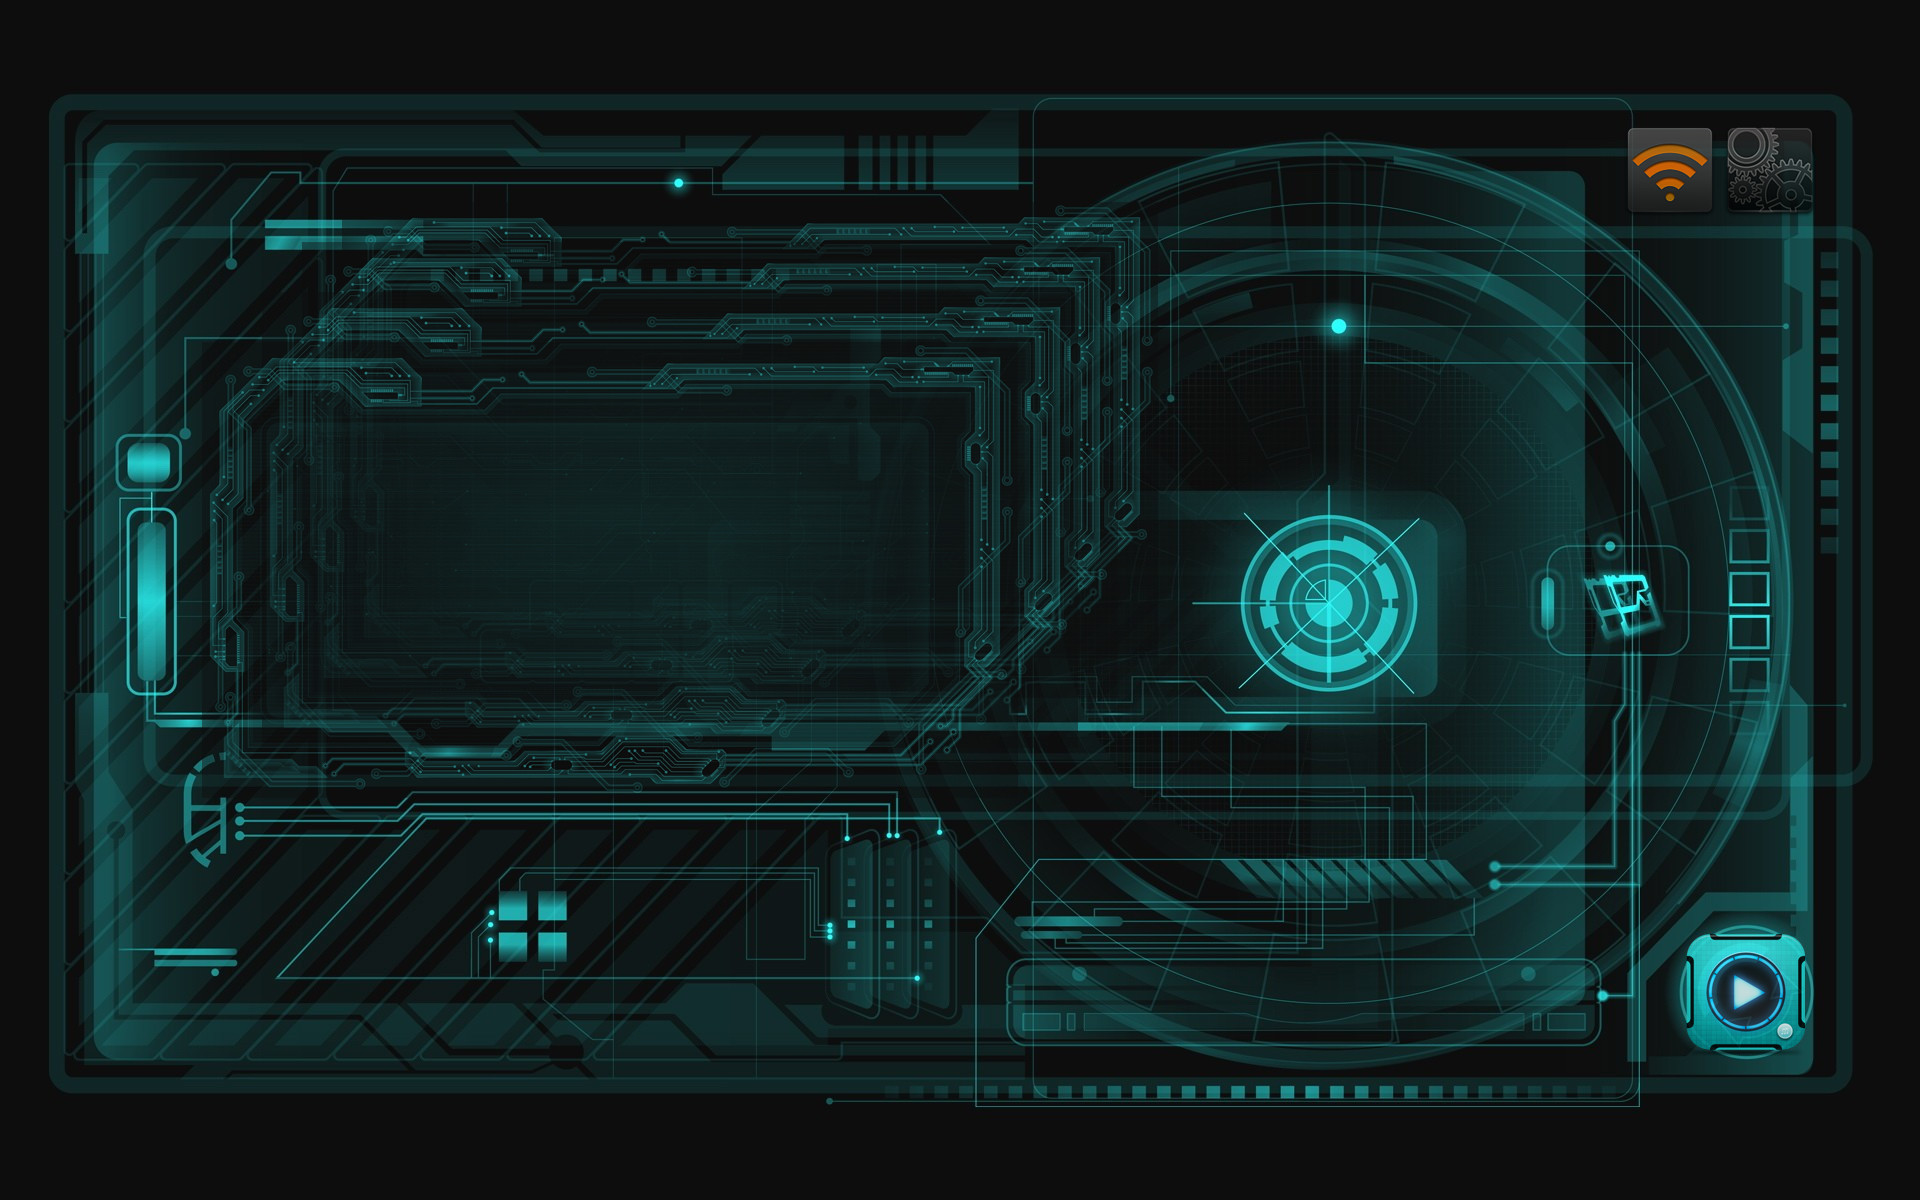 Iron Man Jarvis Wallpaper Android images | Design – Futuristic | Pinterest  | Wallpapers android